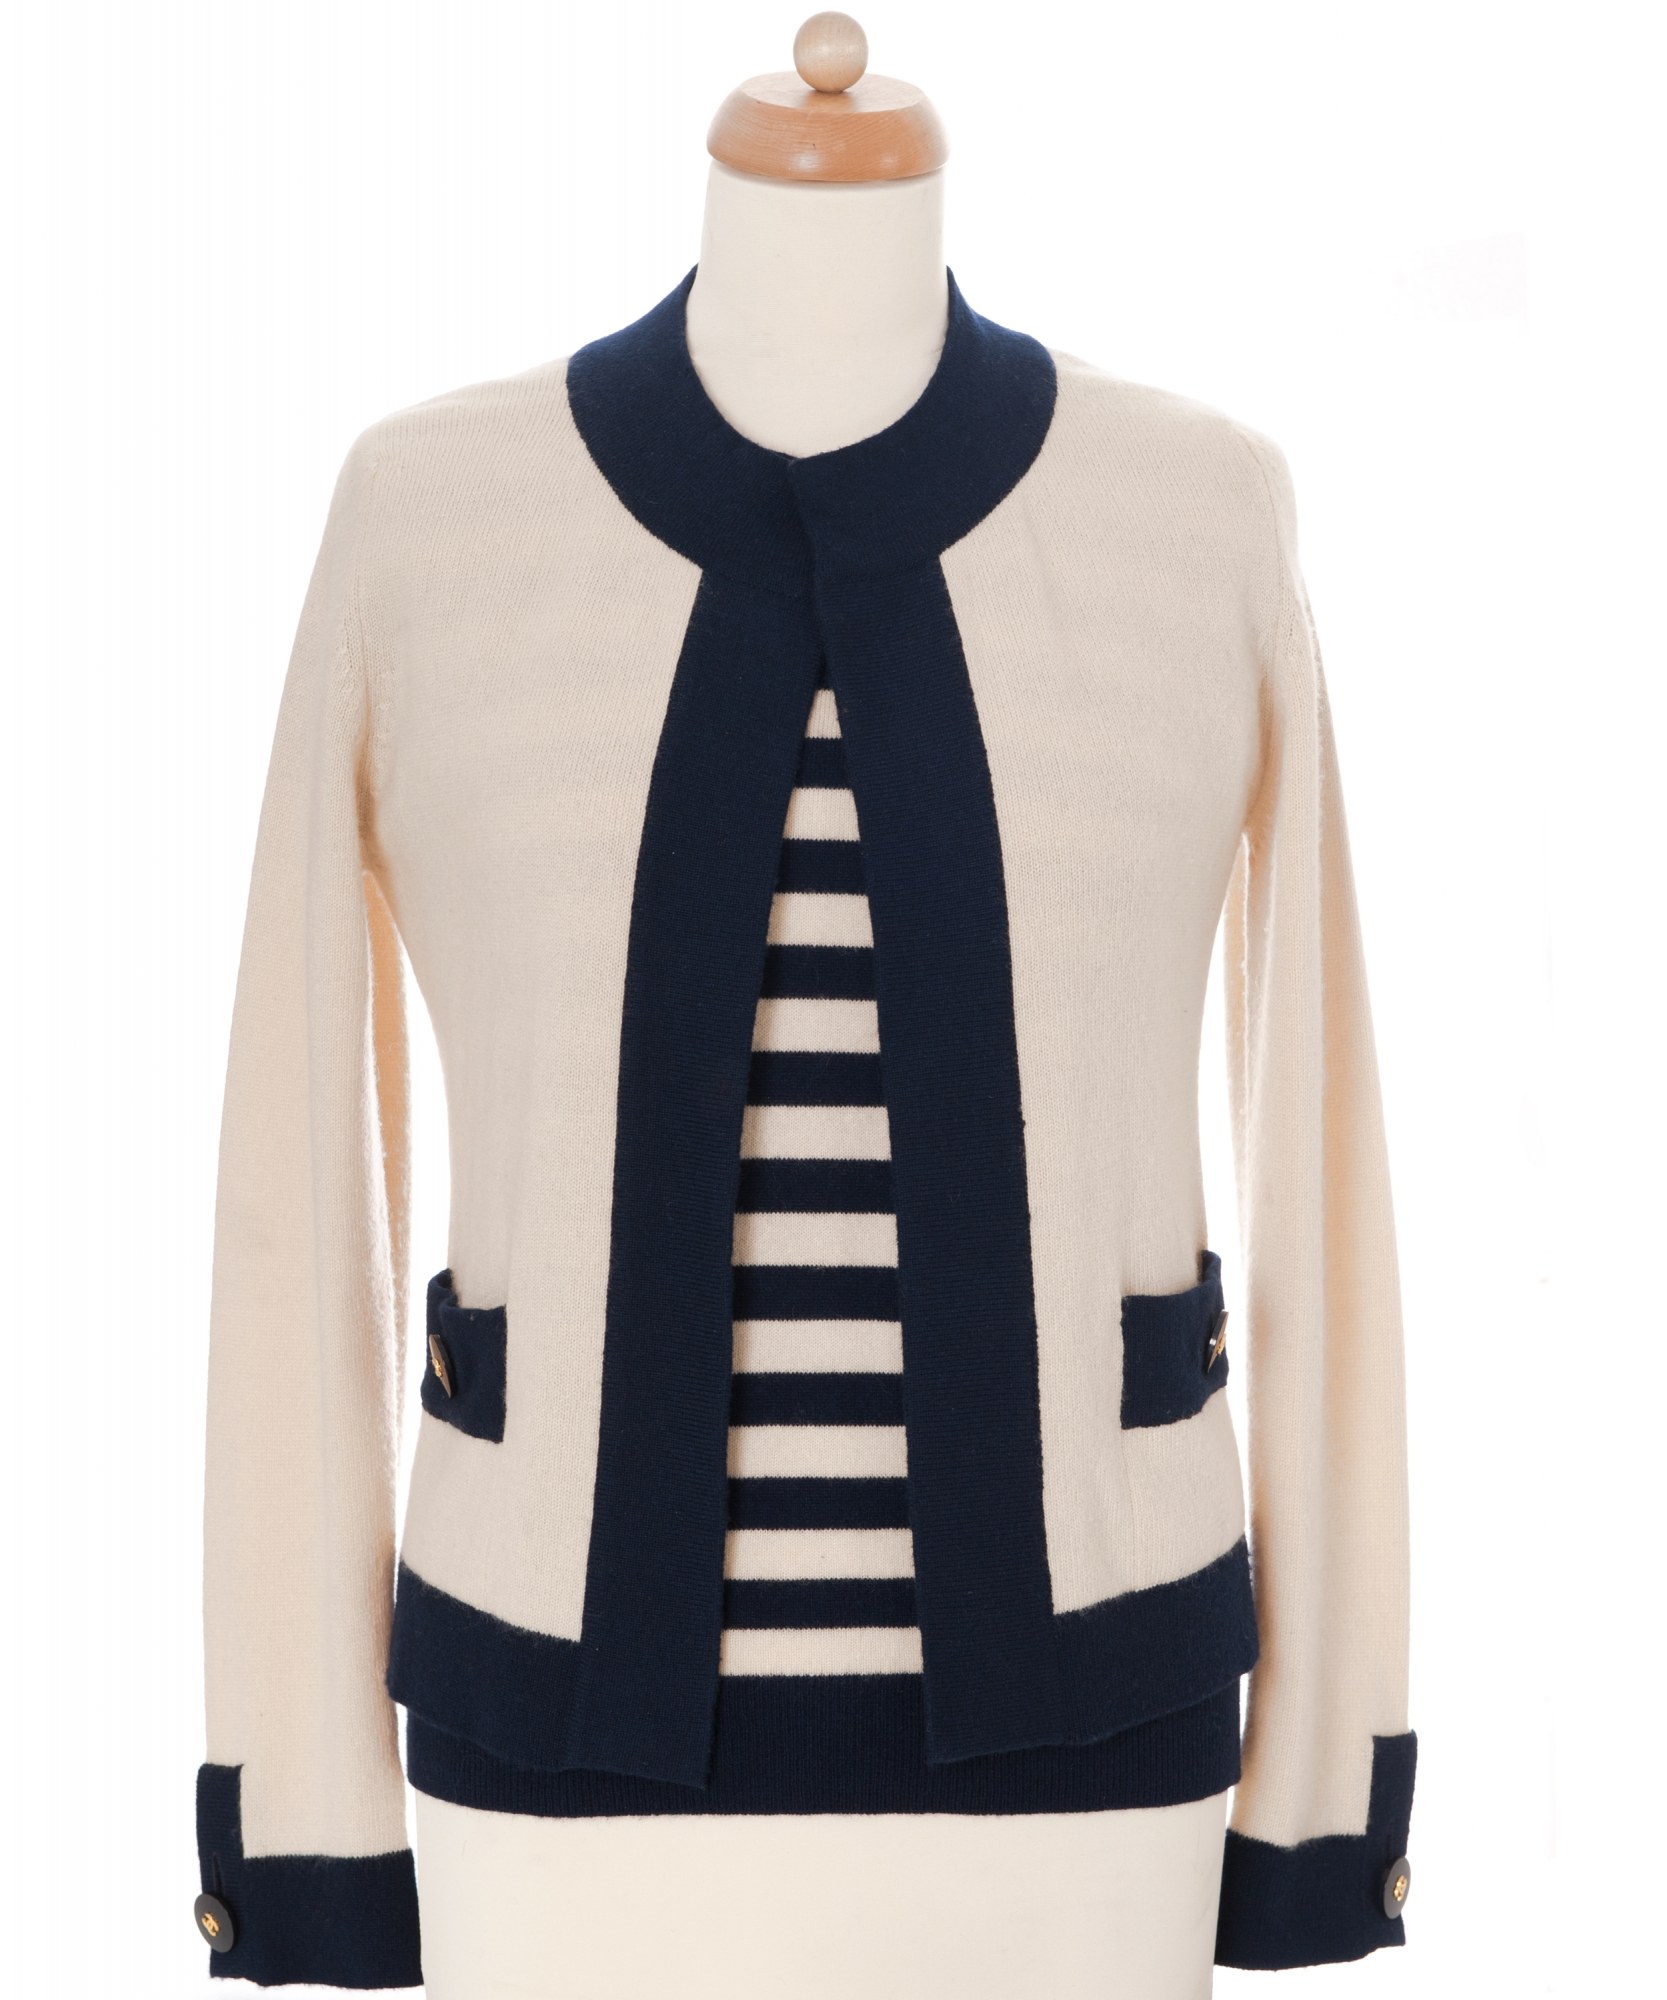 Chanel Cashmere Striped Twinset 97C ...